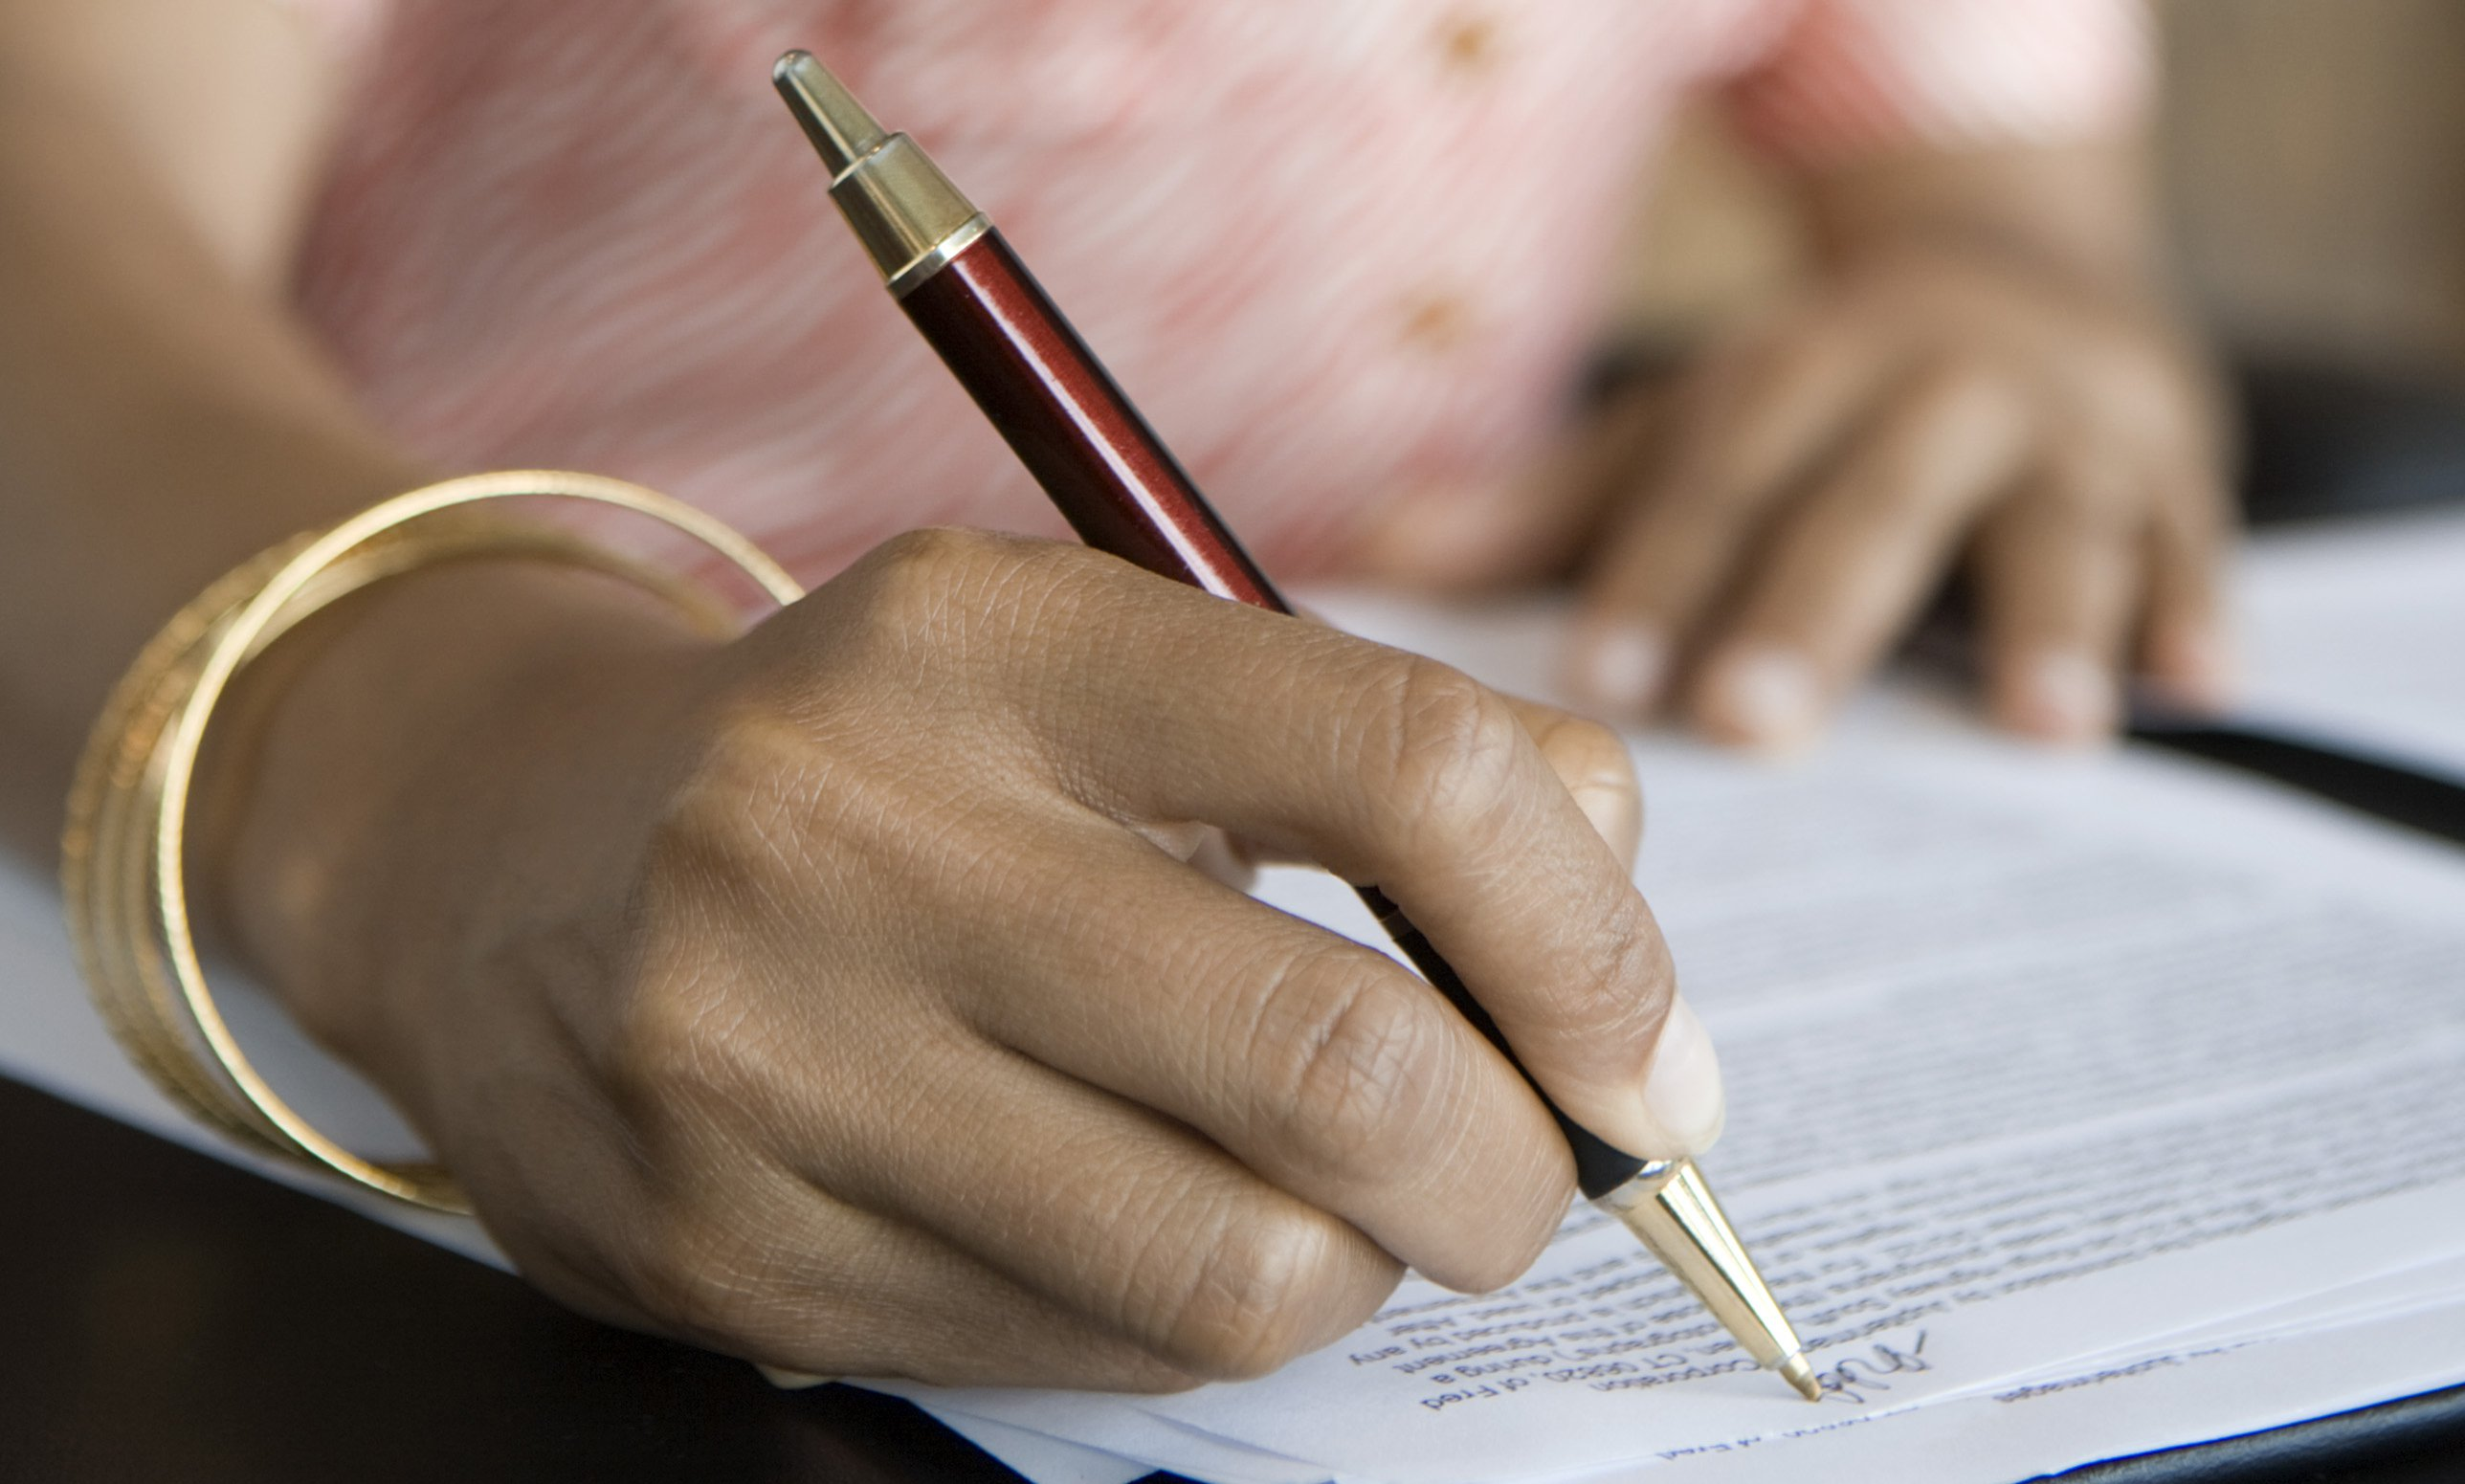 What Makes A Good Dissertation Writing Service